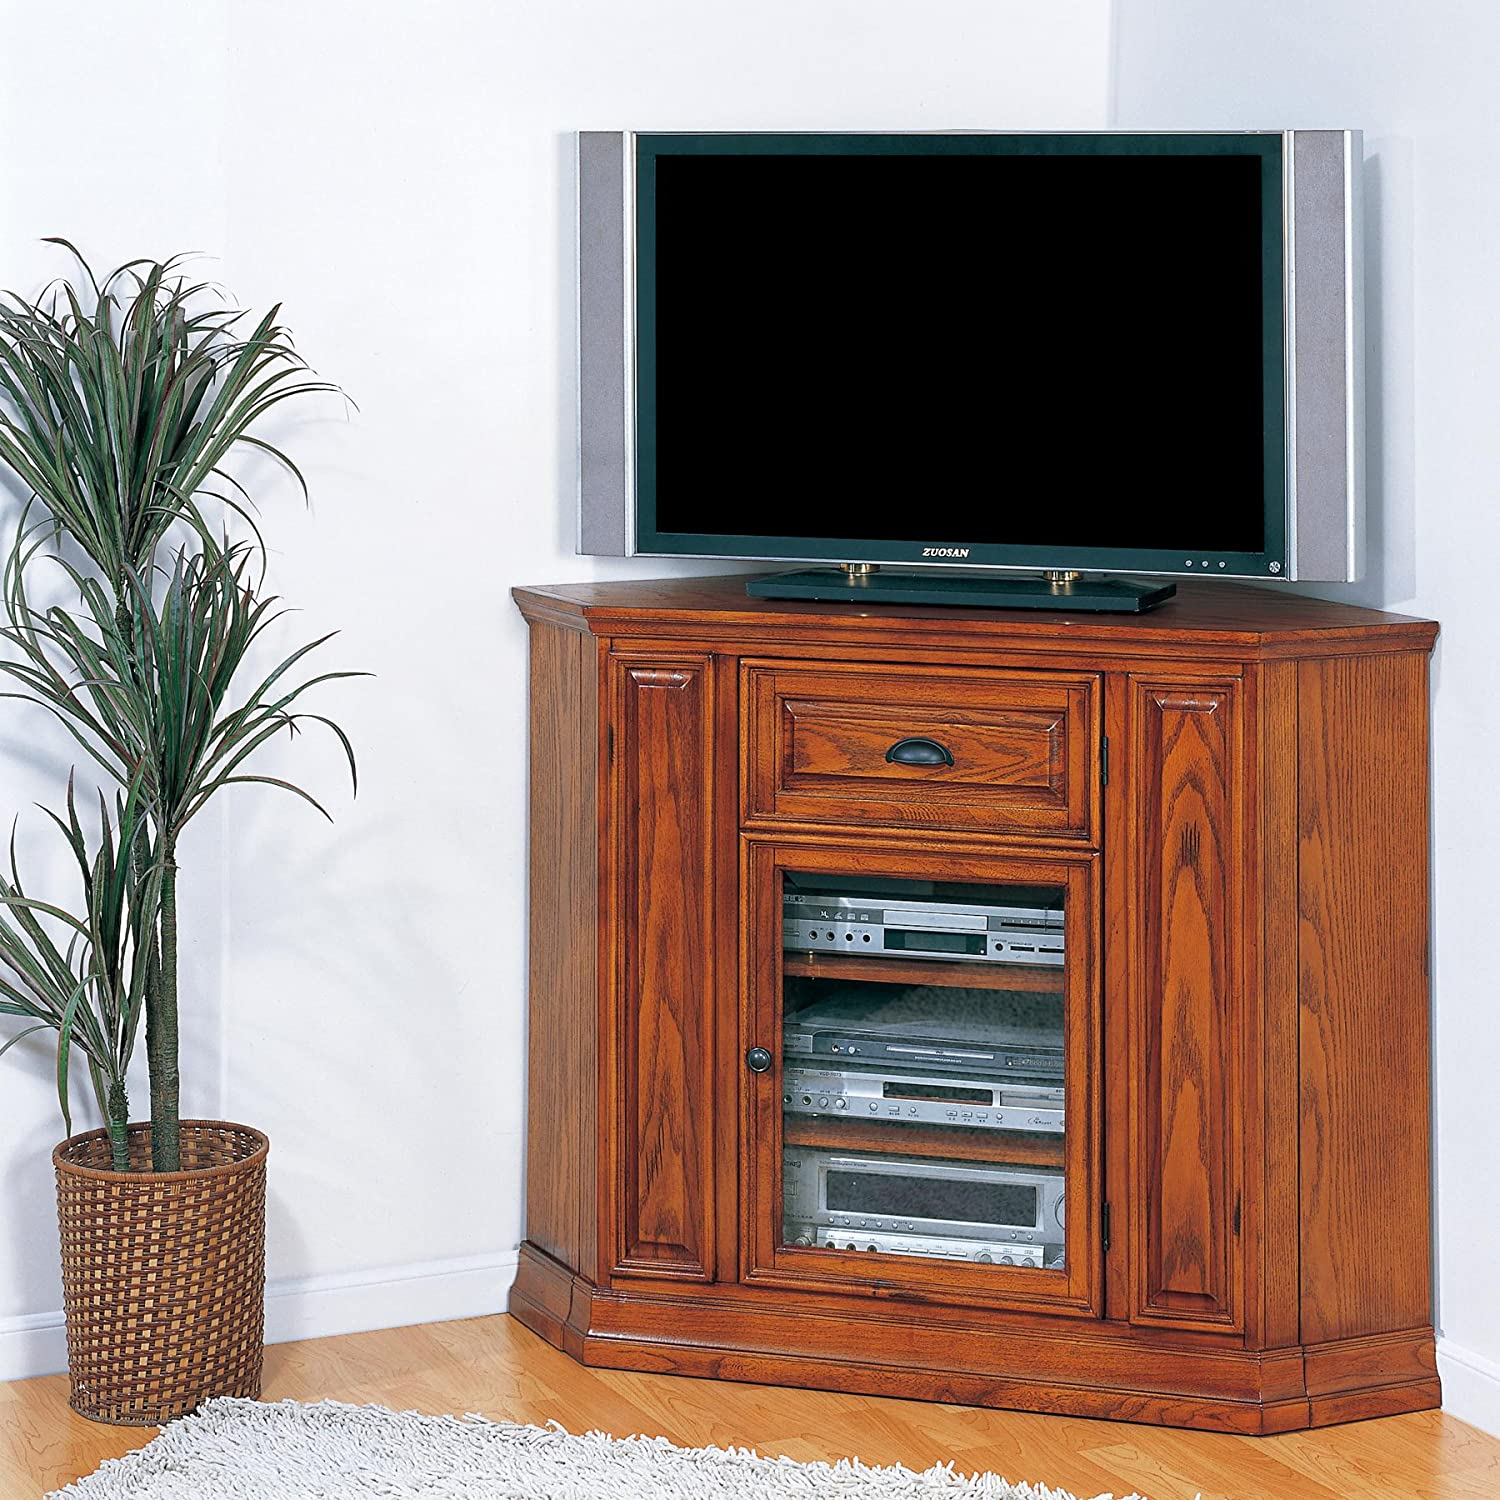 Amazon.com: Leick Riley Holliday Boulder Creek Corner TV Stand, 36 Inch  Tall: Kitchen U0026 Dining